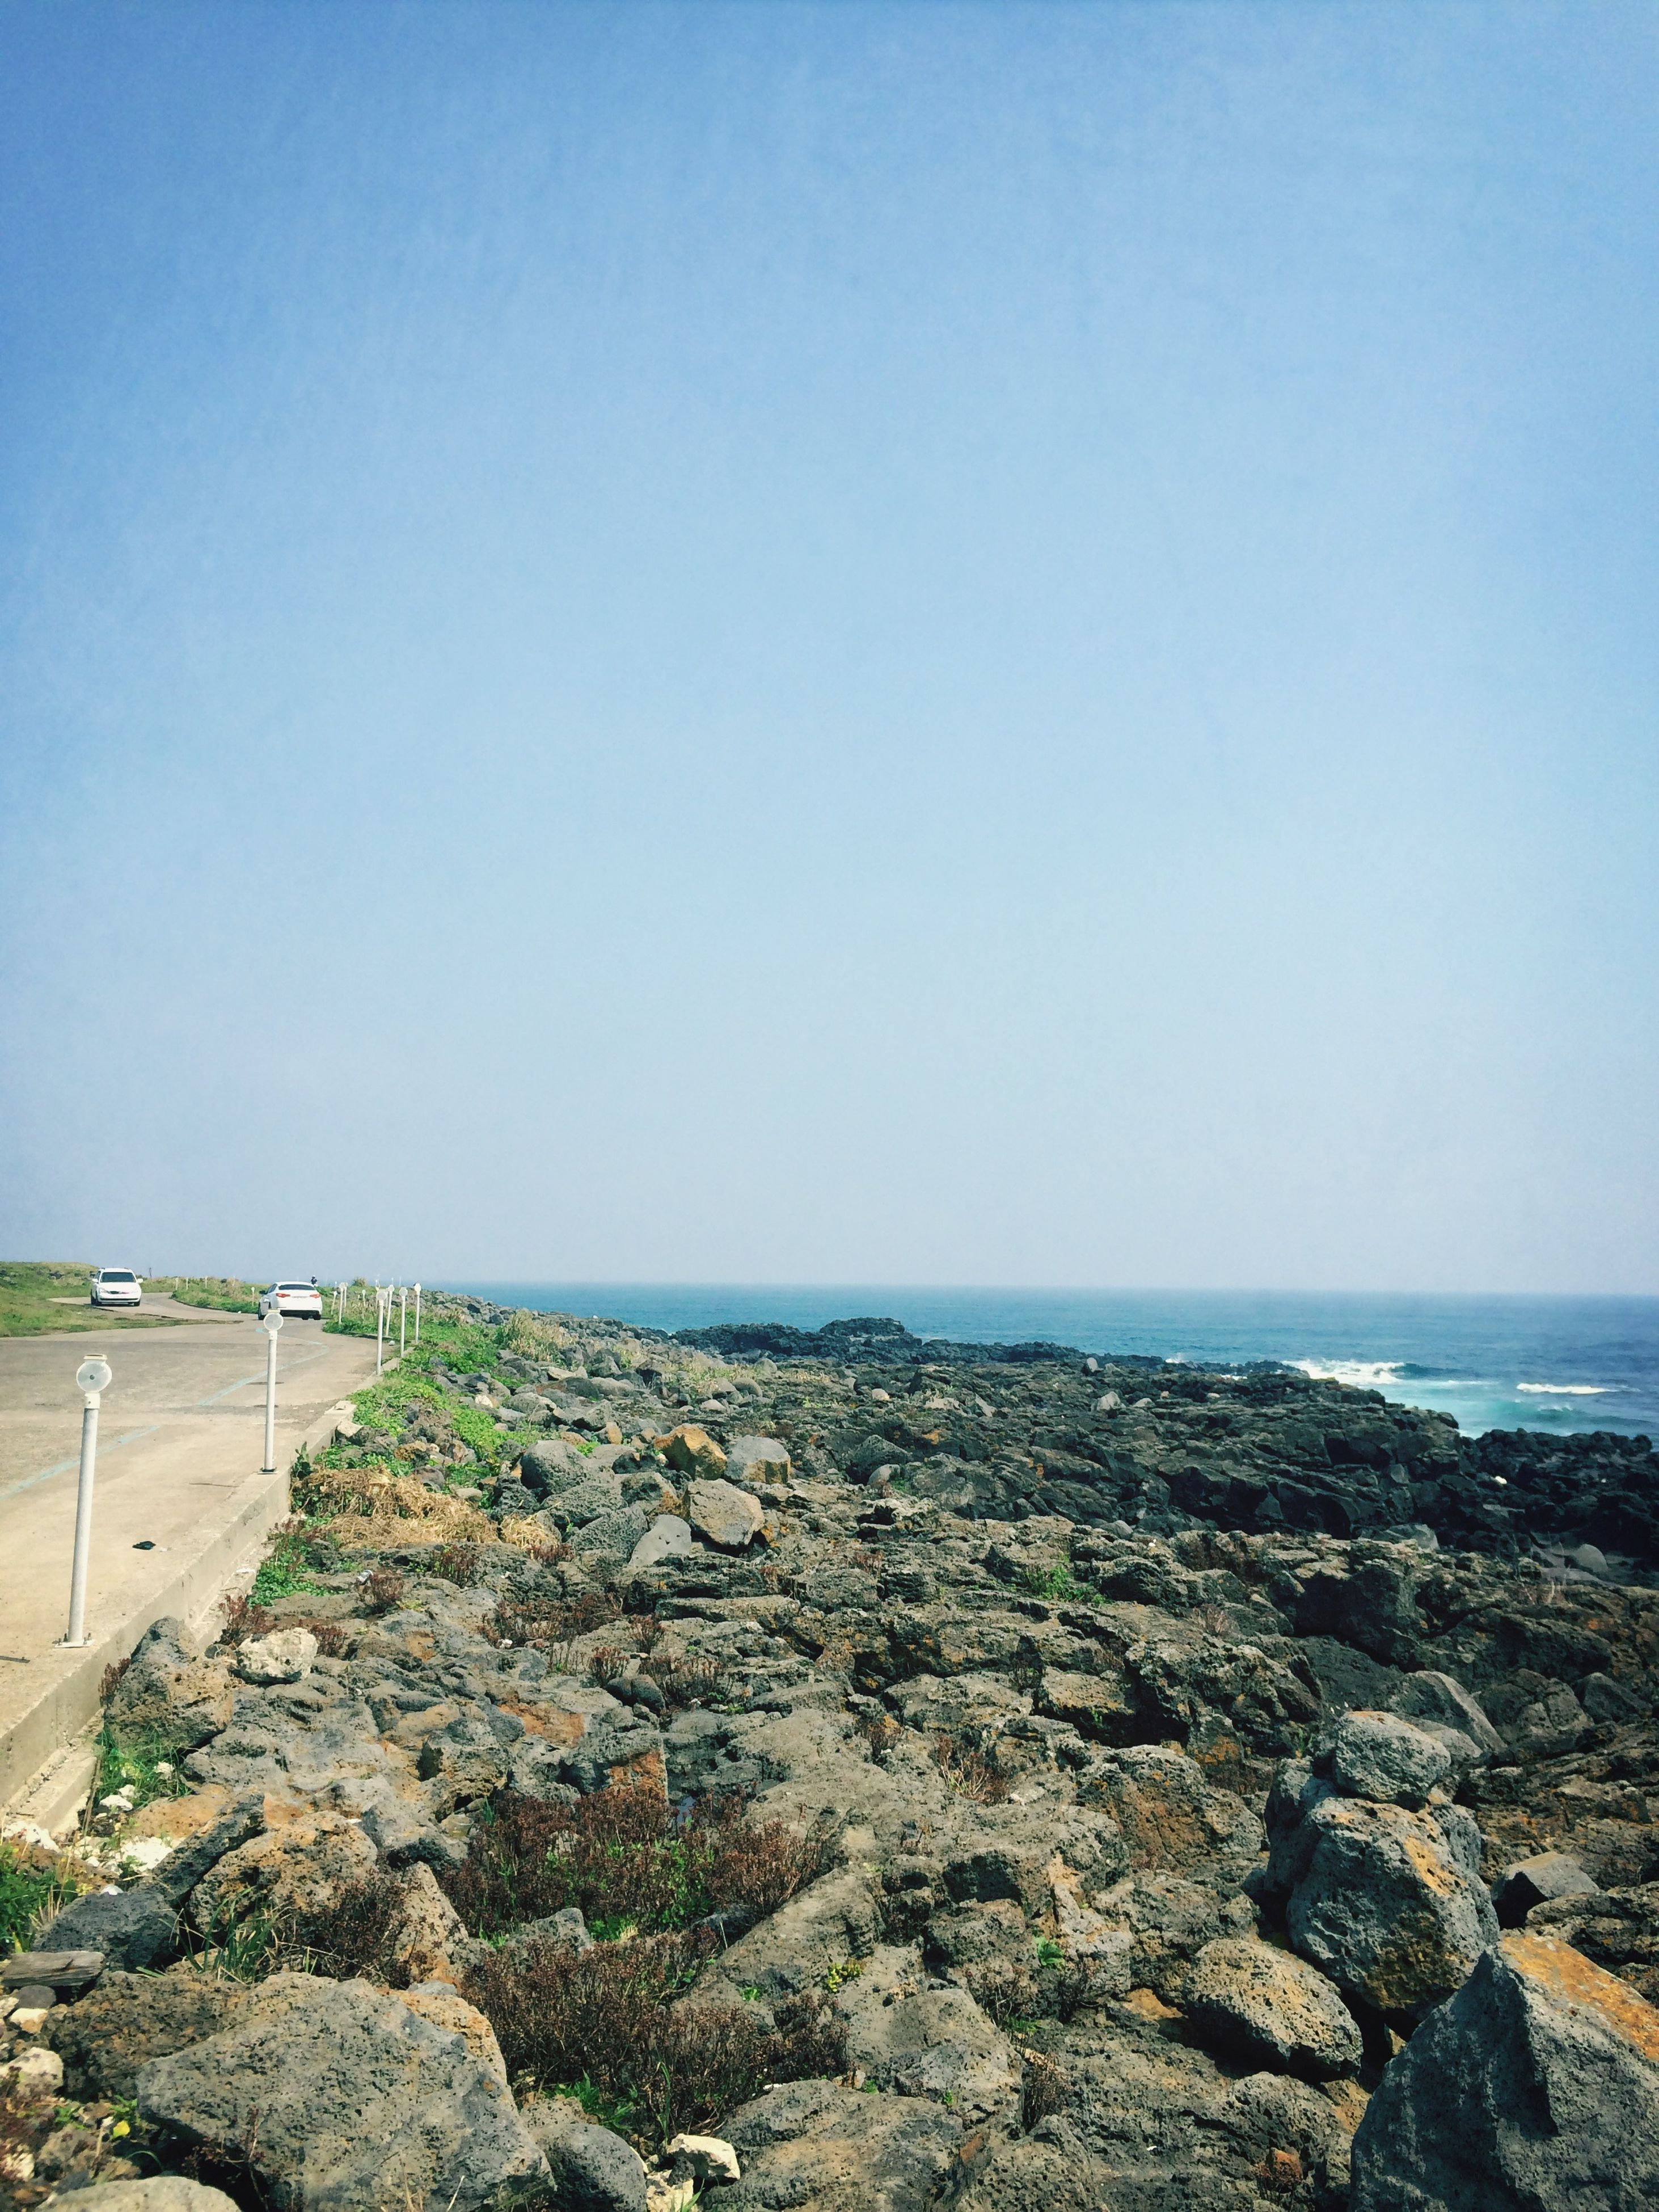 sea, clear sky, horizon over water, copy space, beach, water, tranquil scene, tranquility, shore, scenics, blue, beauty in nature, nature, sand, rock - object, coastline, idyllic, day, outdoors, non-urban scene